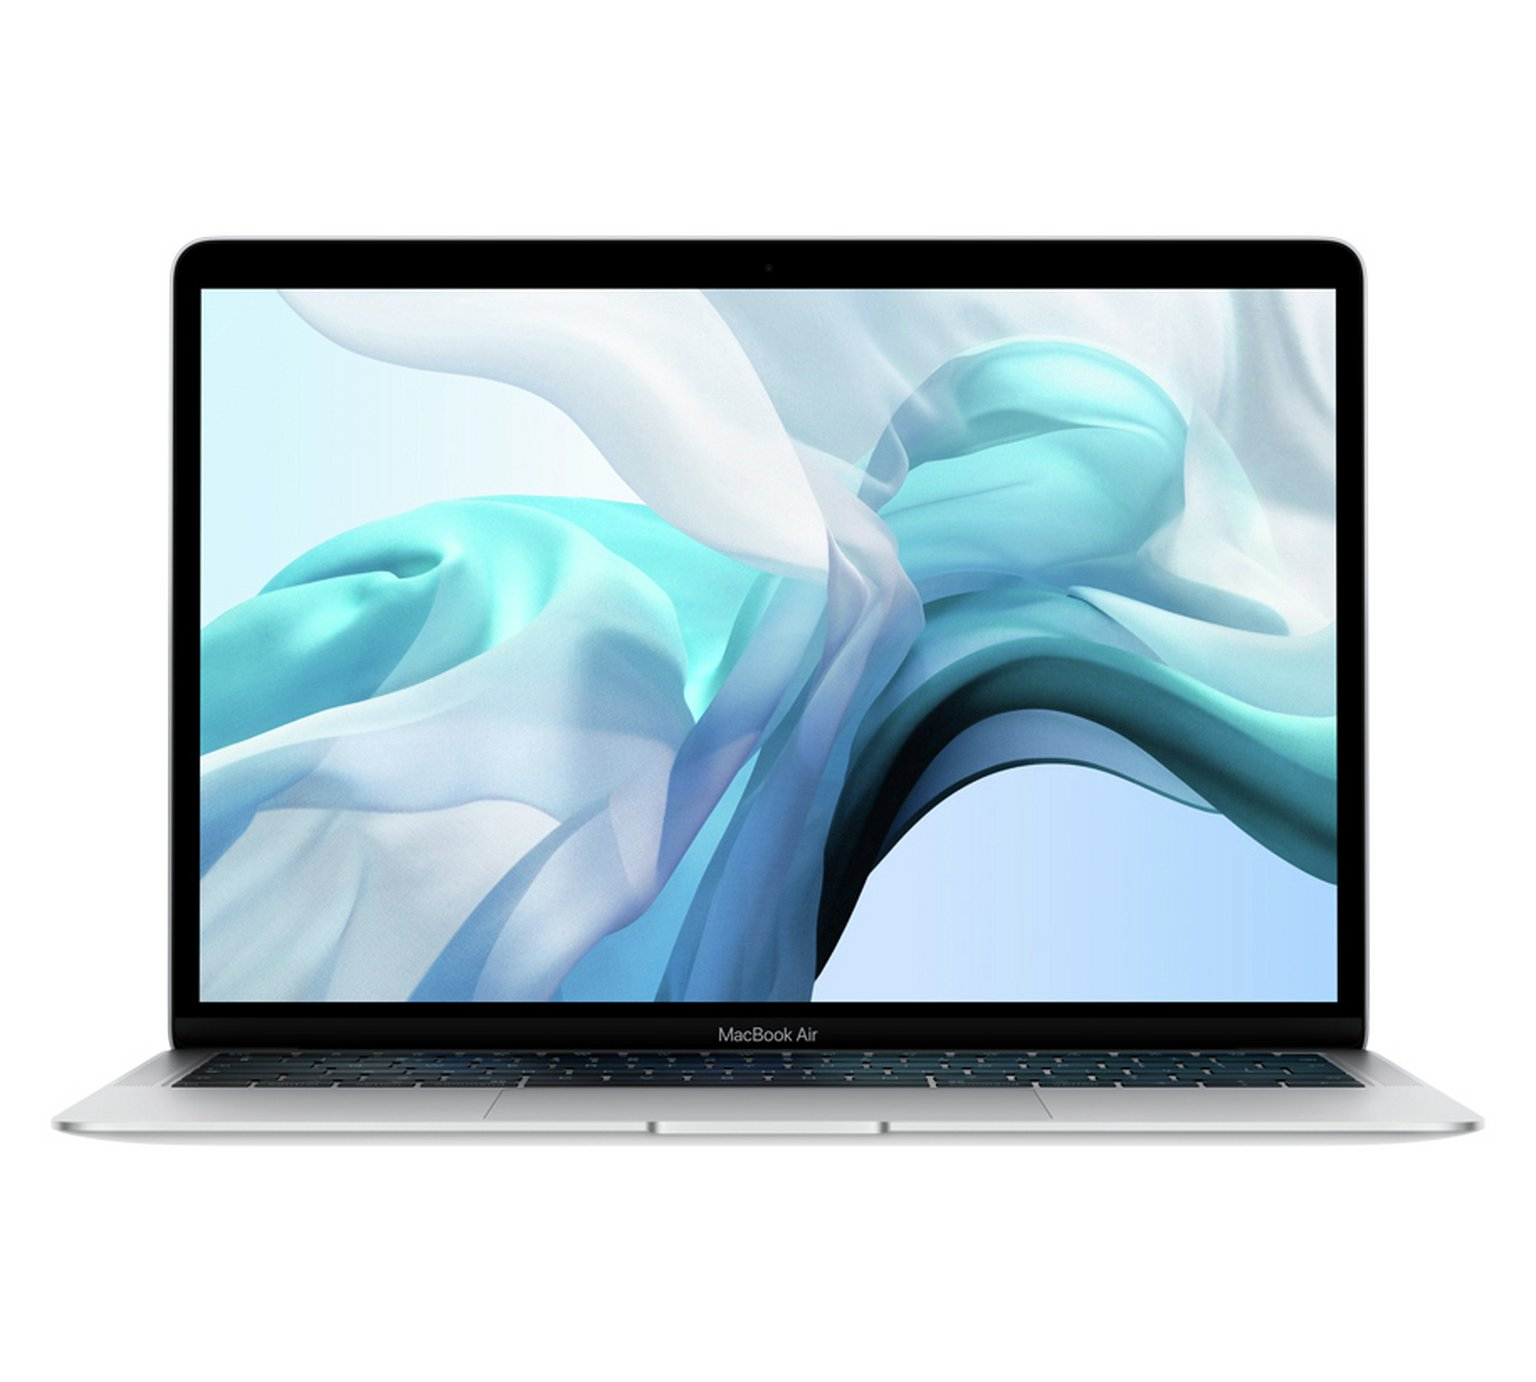 Apple MacBook Air 2018 13 Inch i5 8GB 128GB - Silver